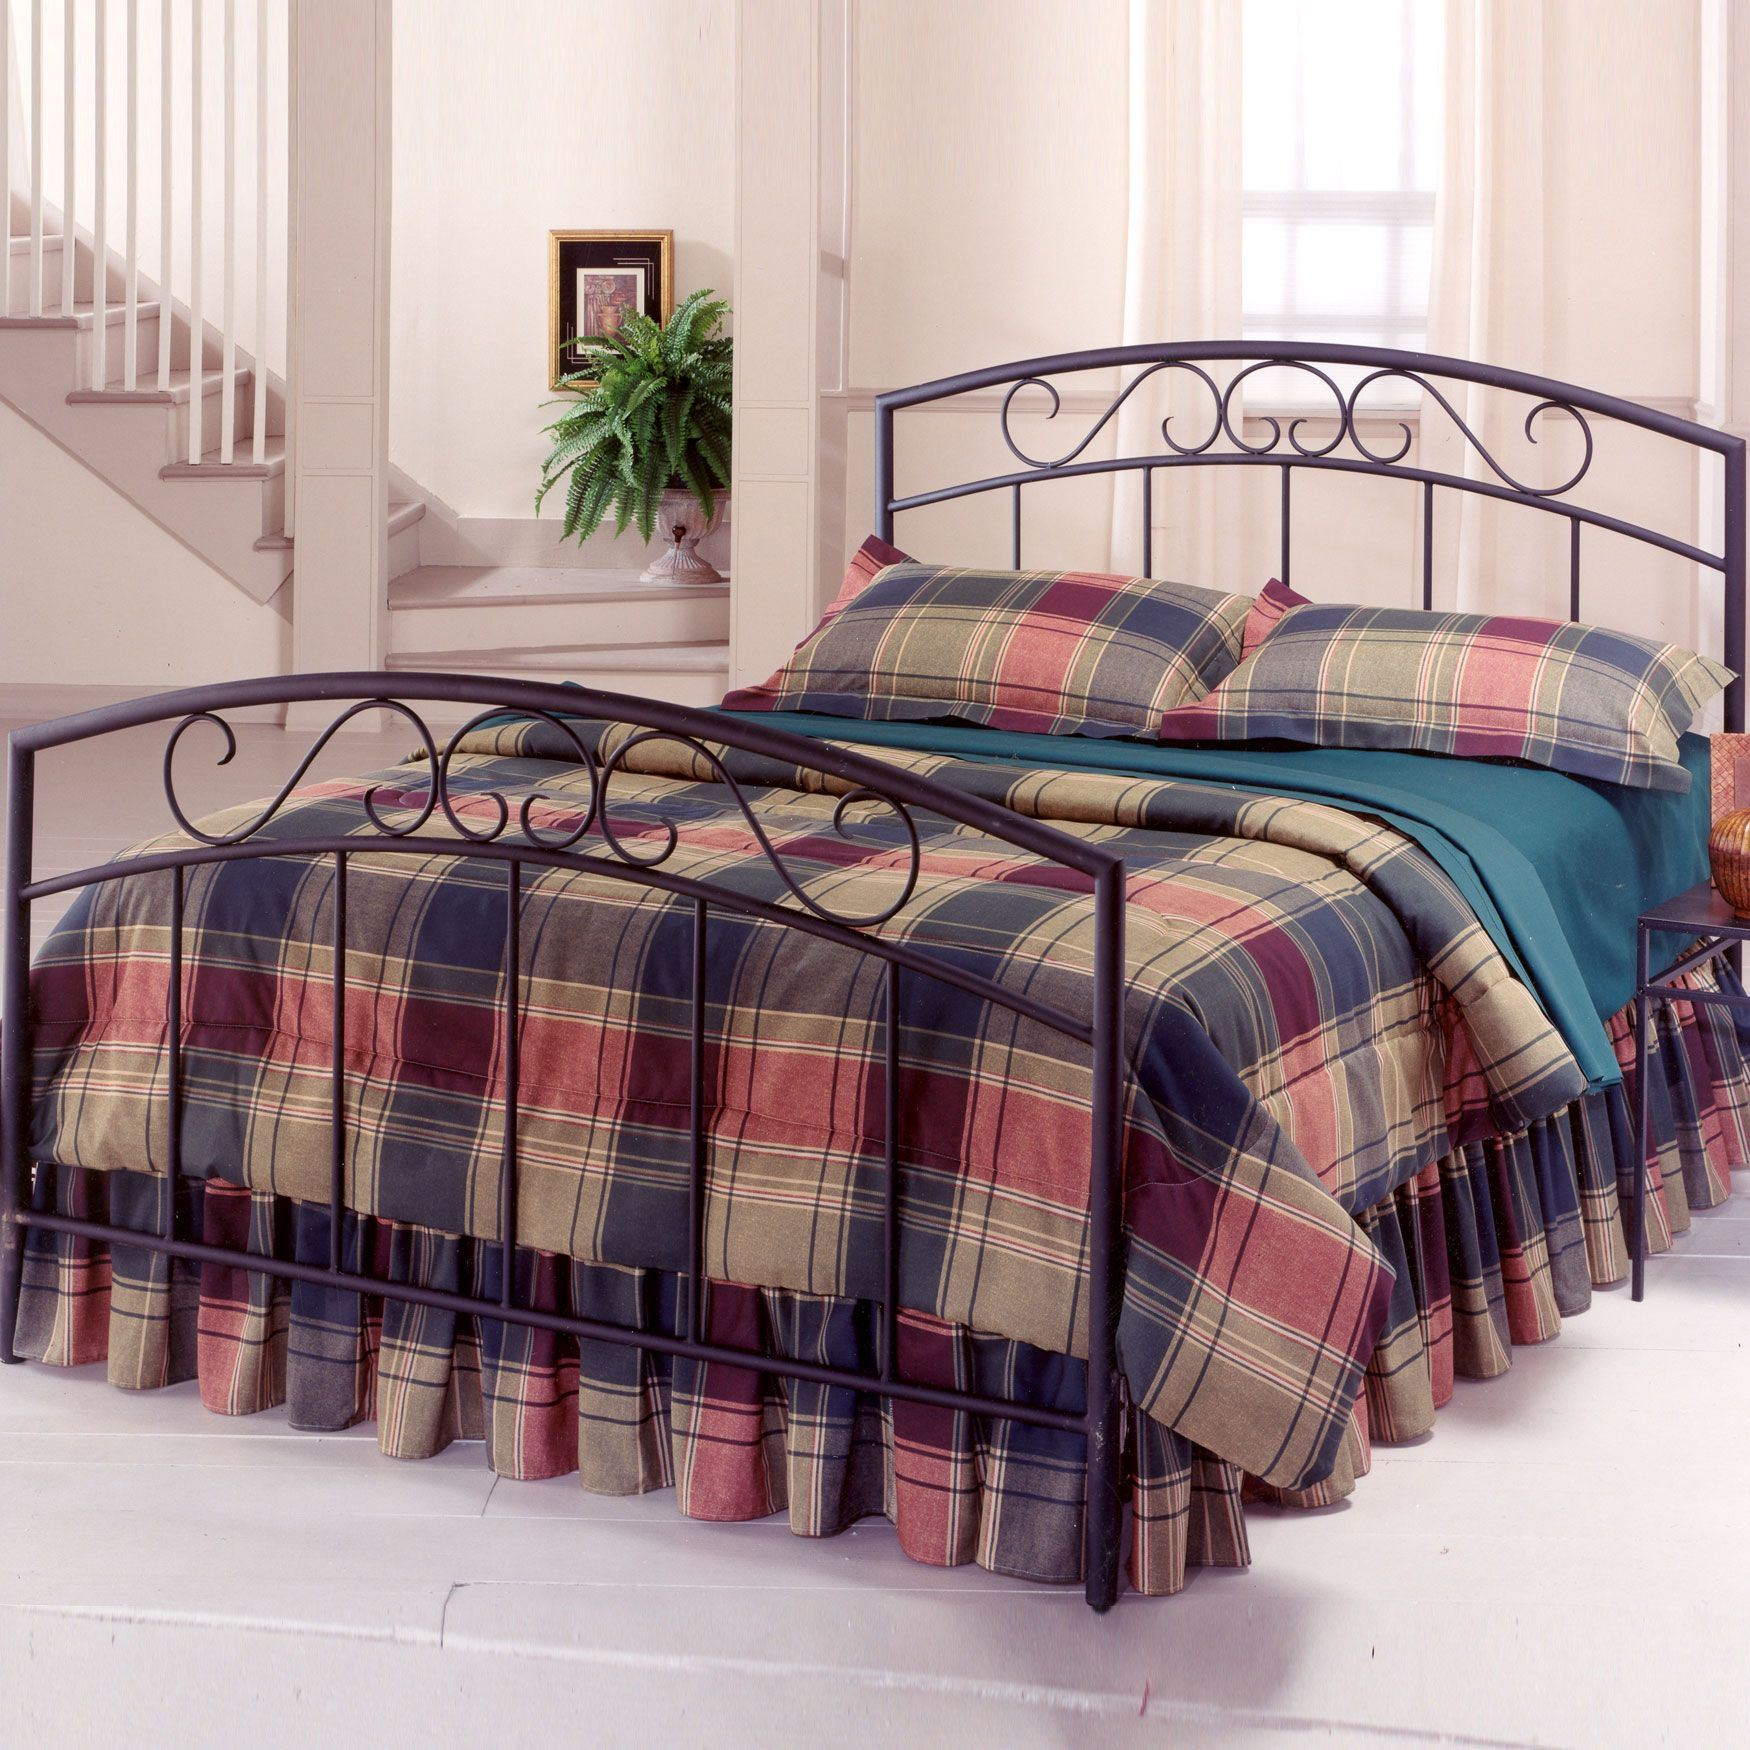 Hillsdale Wendell Bed Set with Bed Frame,